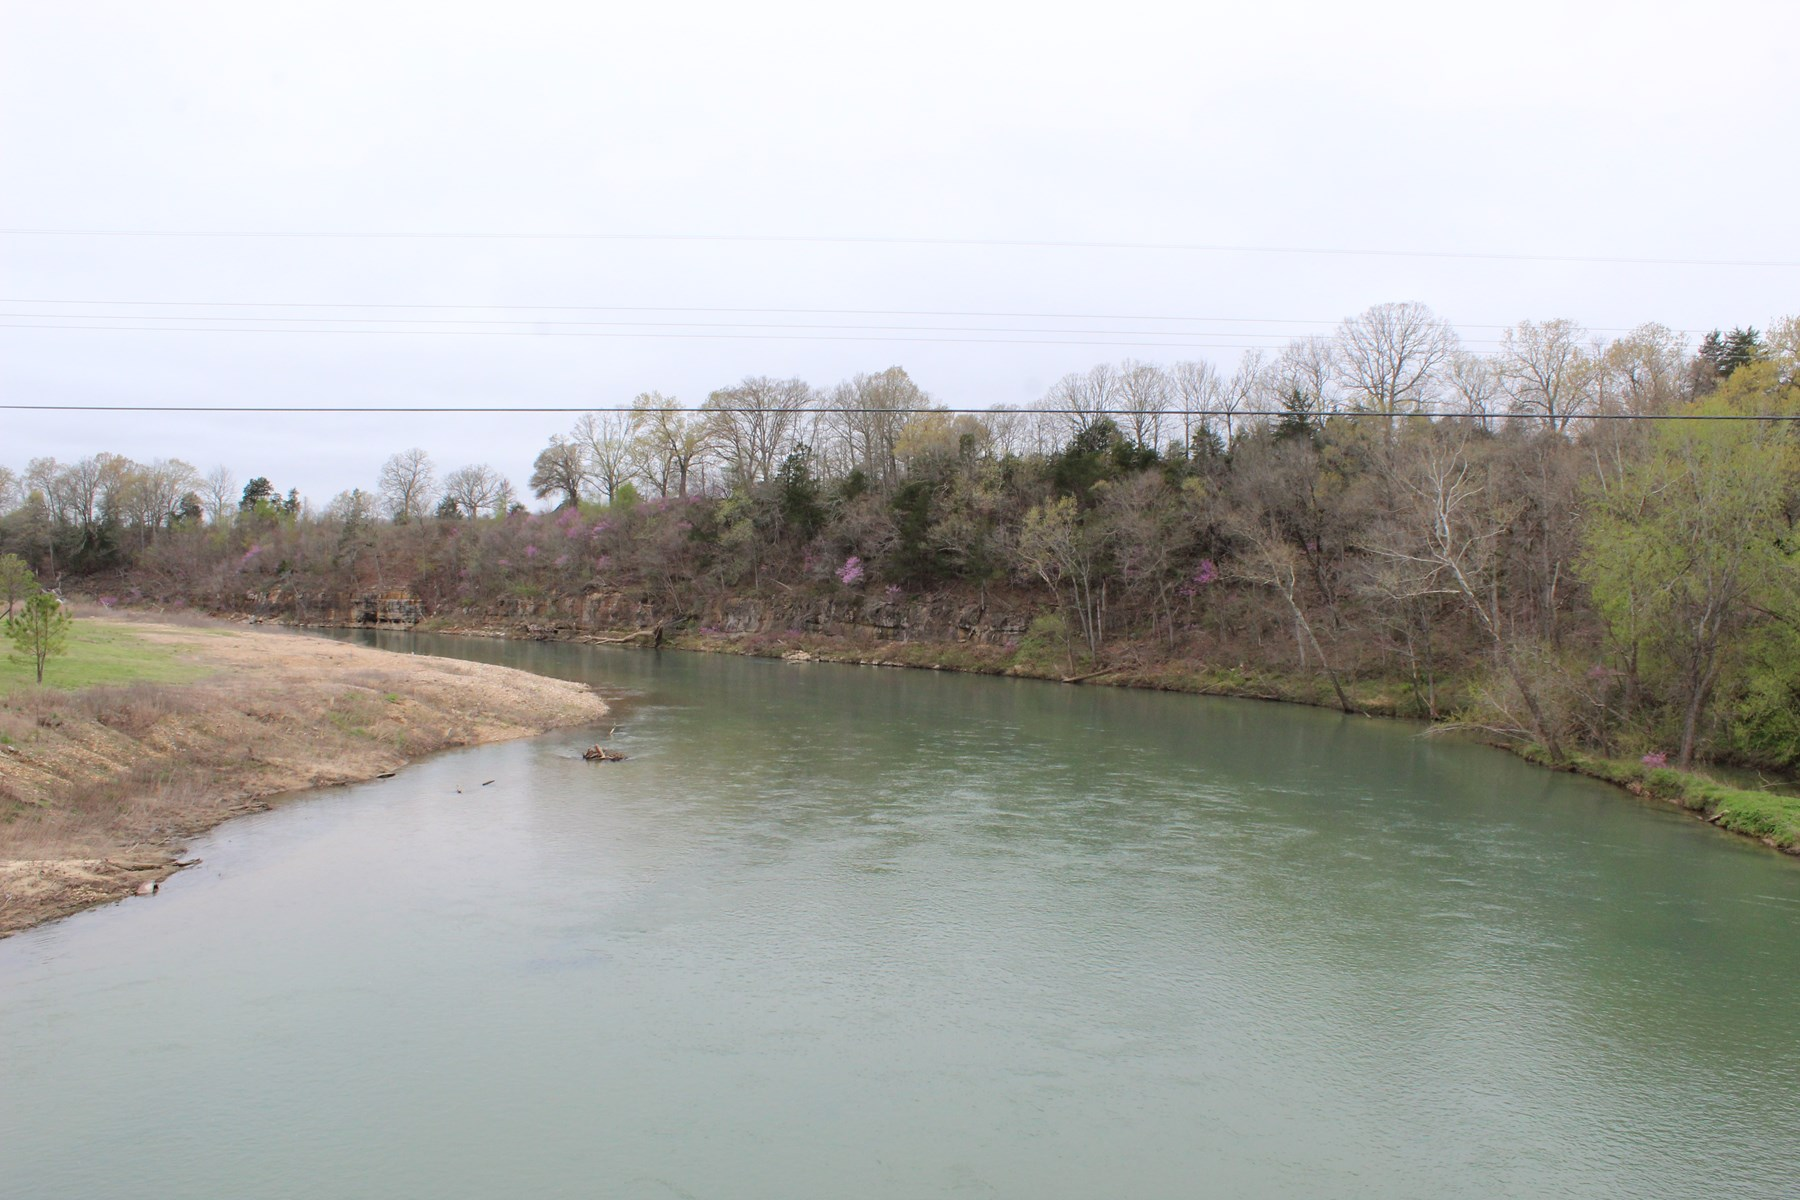 River Property for Sale in the Southern Missouri Ozarks